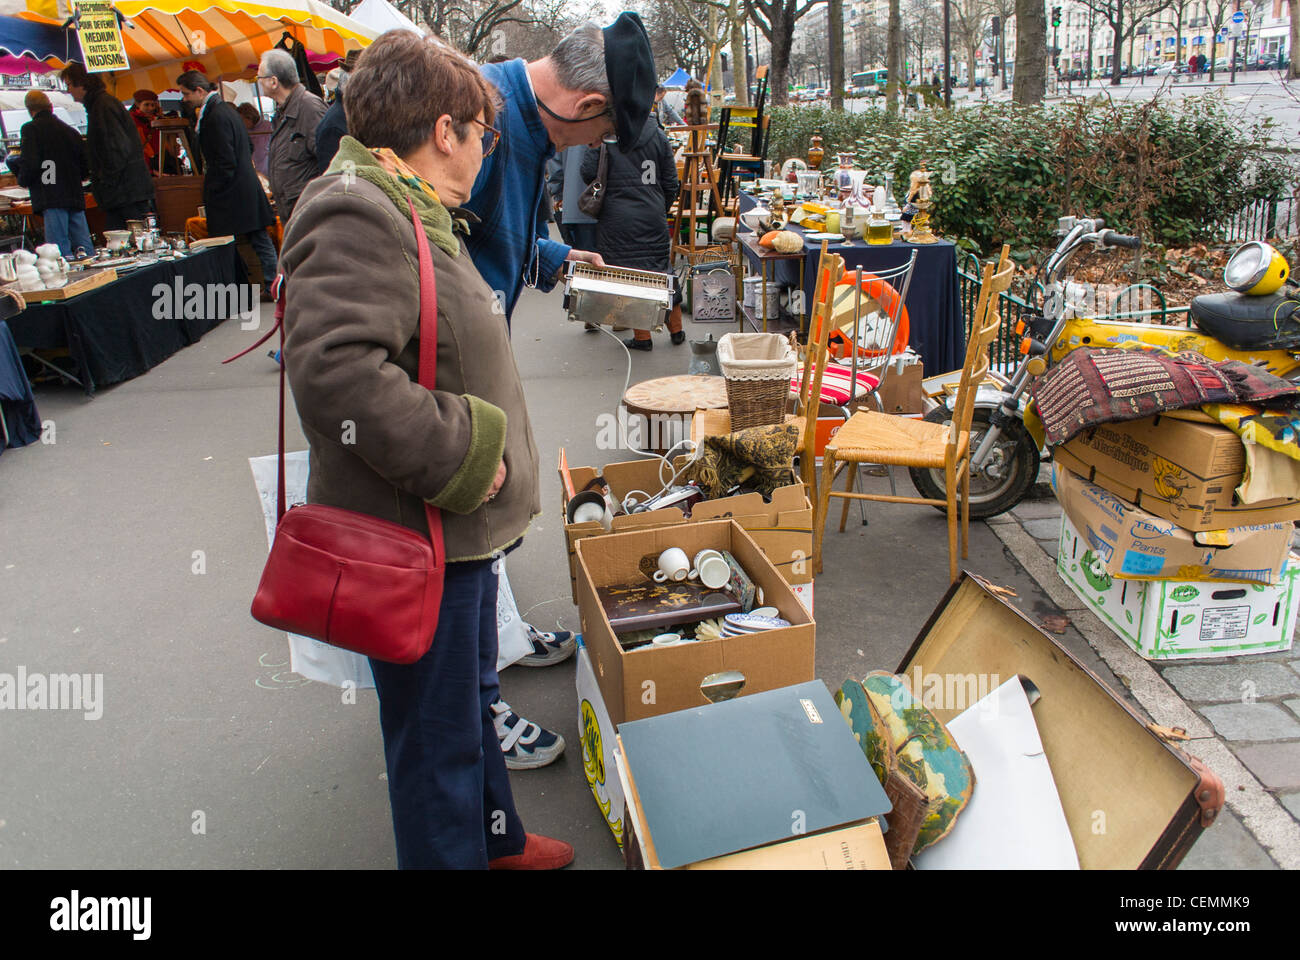 Brocante Cours De Vincennes Paris France Senior Woman Shopping At French Brocante Flea